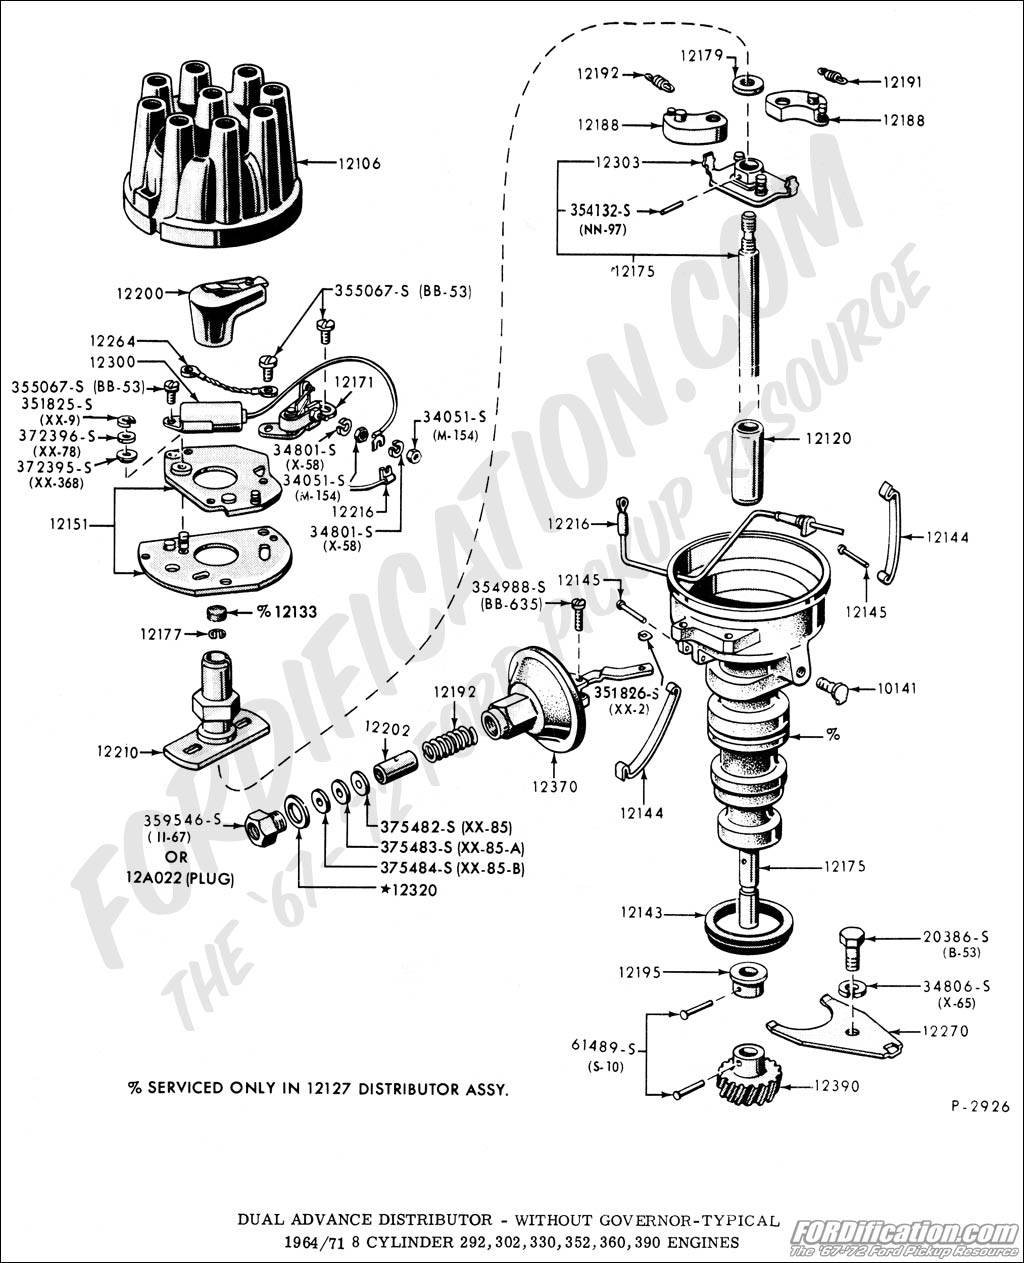 Ford 302 Spark Plug Wiring Diagram | Wiring Diagram - 1997 Ford F150 Spark Plug Wiring Diagram